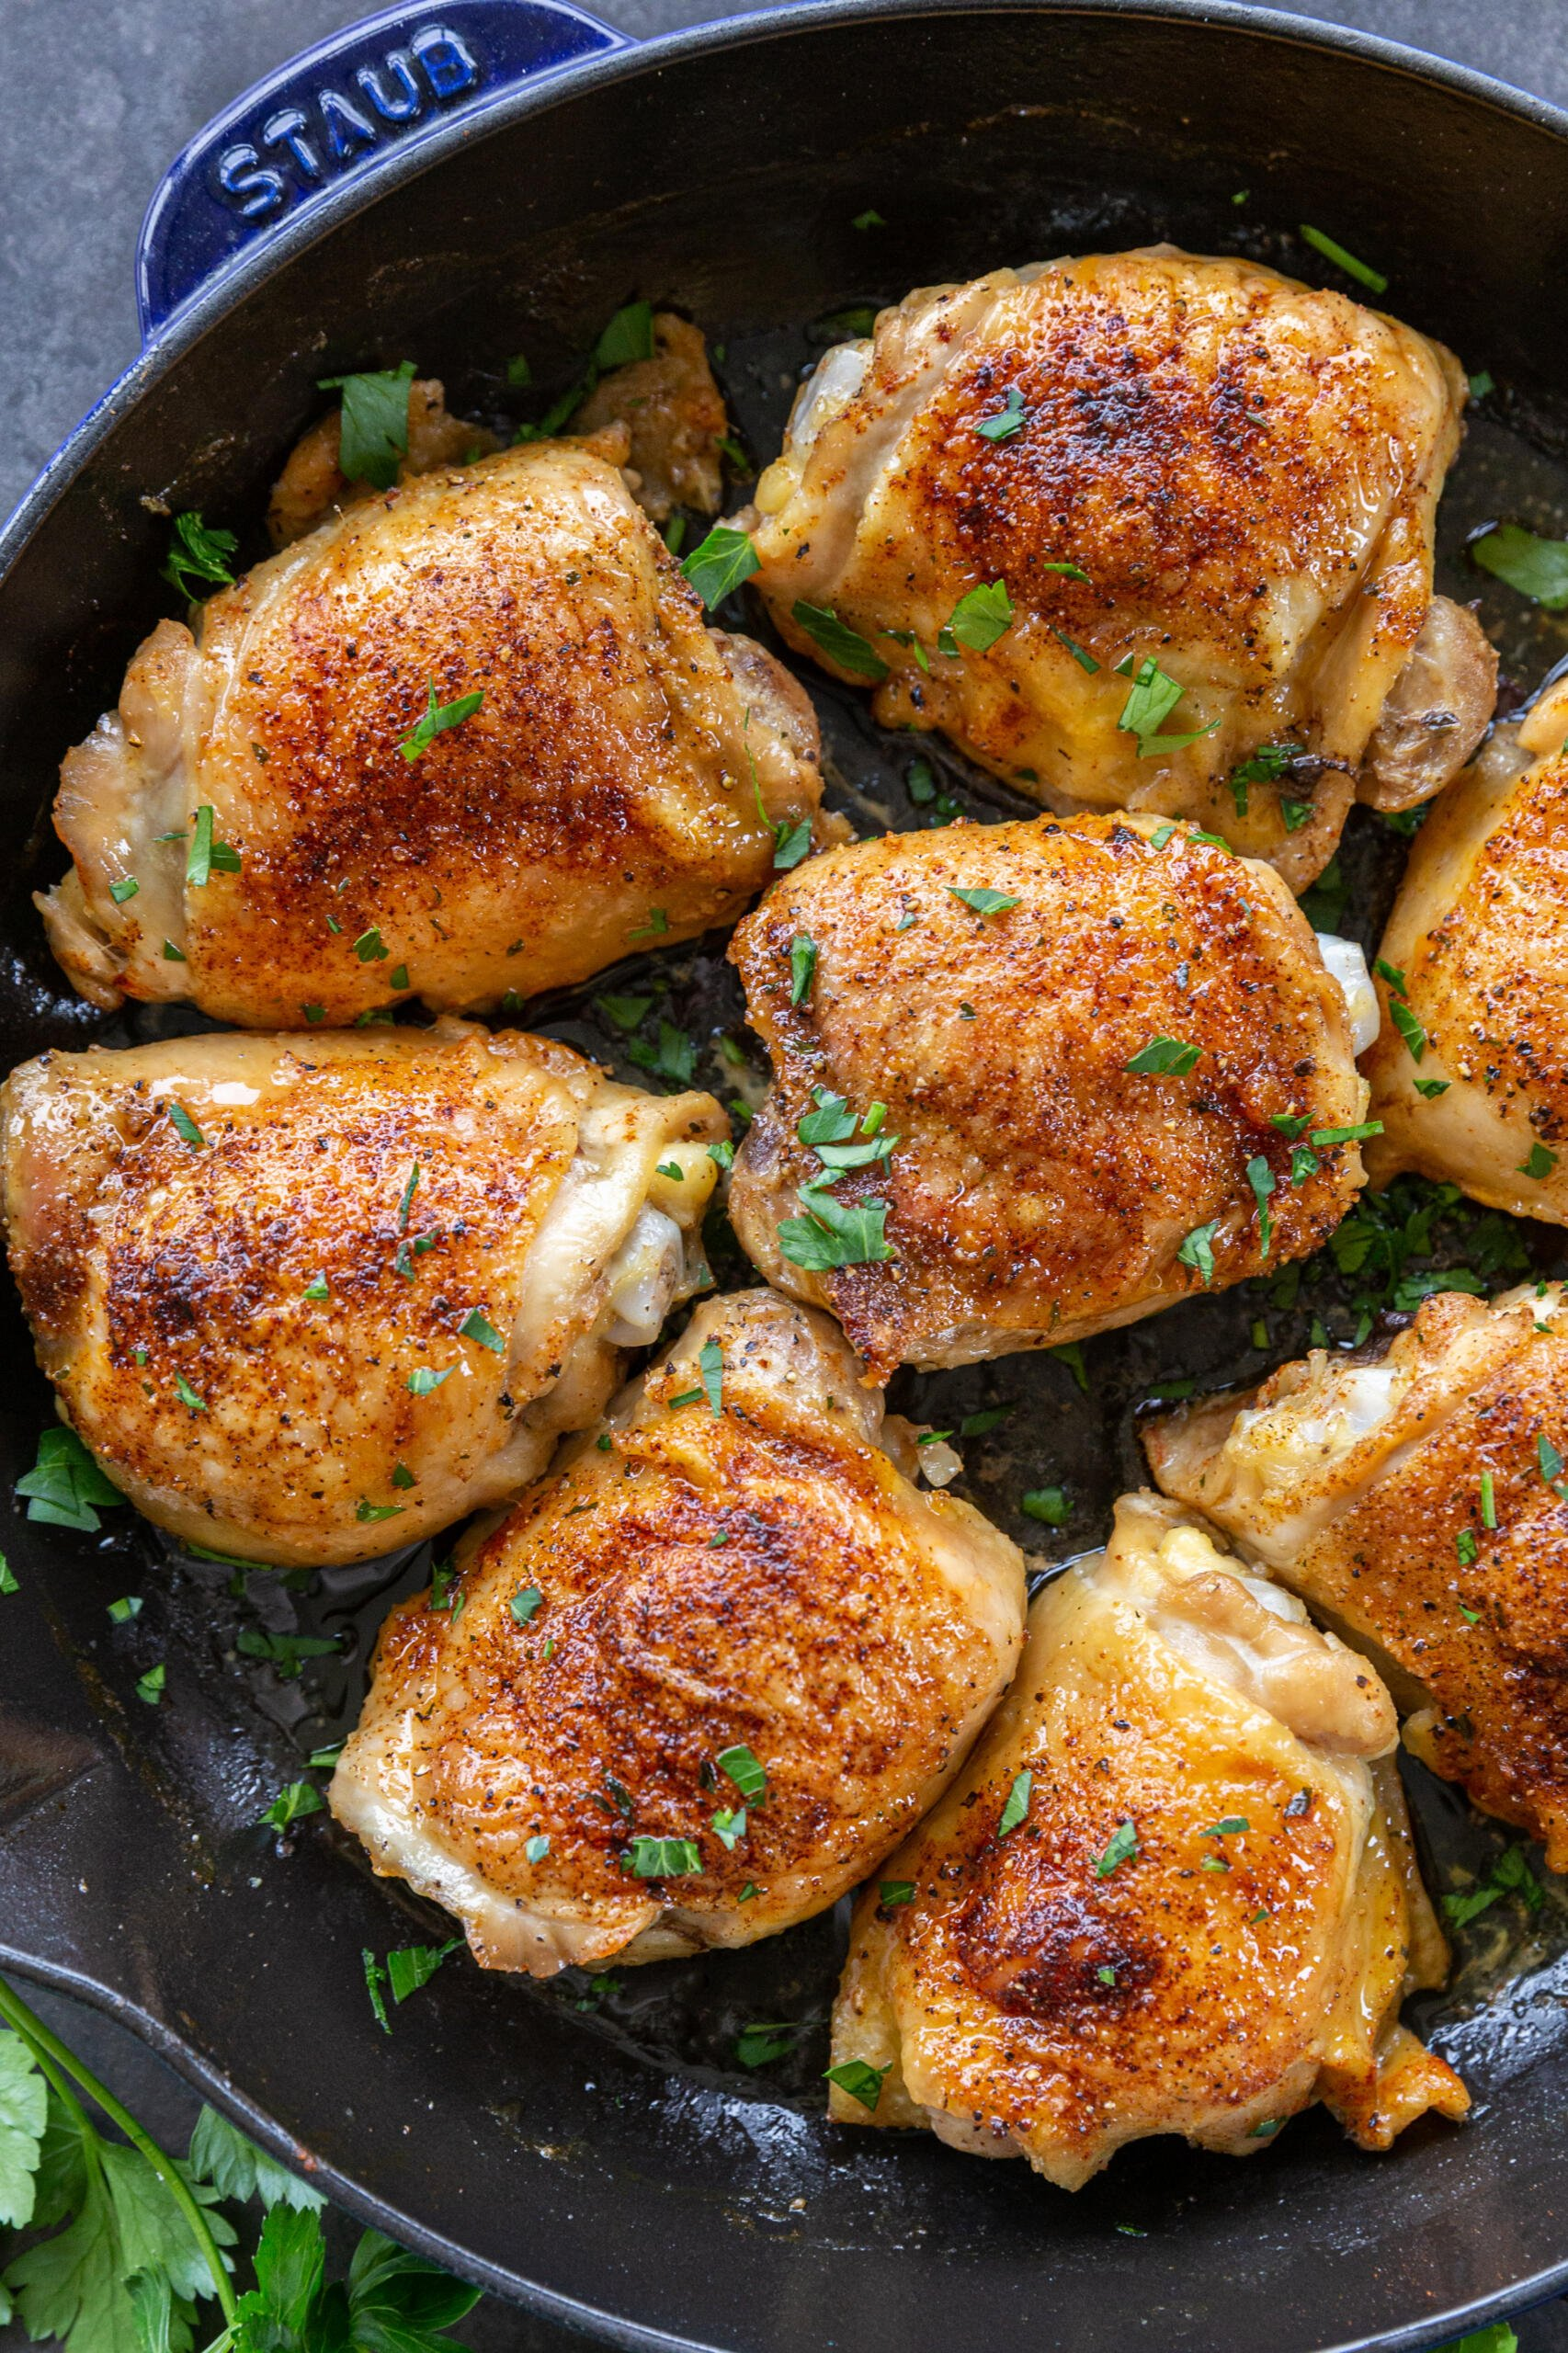 Baked chicken thighs in a pan